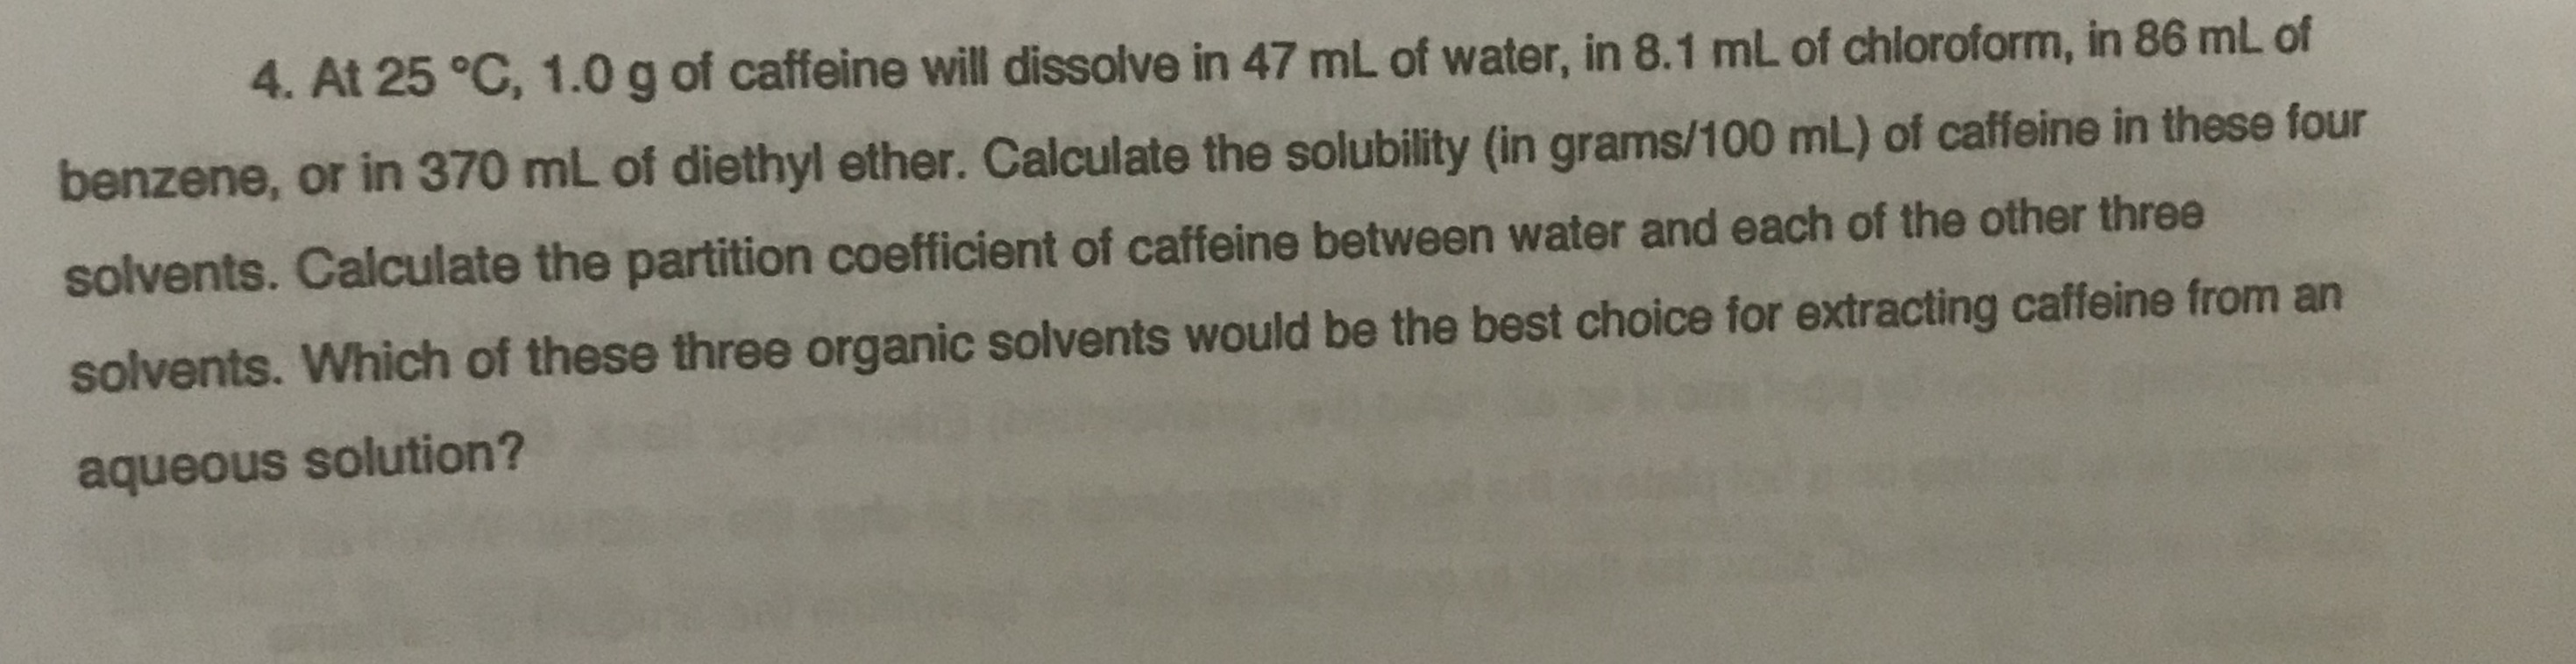 4. At 25 °C, 1.0 g of caffeine will dissolve in 47 mL of water, in 8.1 mL of chloroform, in 86 mL of benzene, or in 370 mL of diethyl ether. Calculate the solubility (in grams/100 mL) of caffeine in these four solvents. Calculate the partition coefficient of caffeine between water and each of the other three solvents. Which of these three organic solvents would be the best choice for extracting caffeine from an aqueous solution?